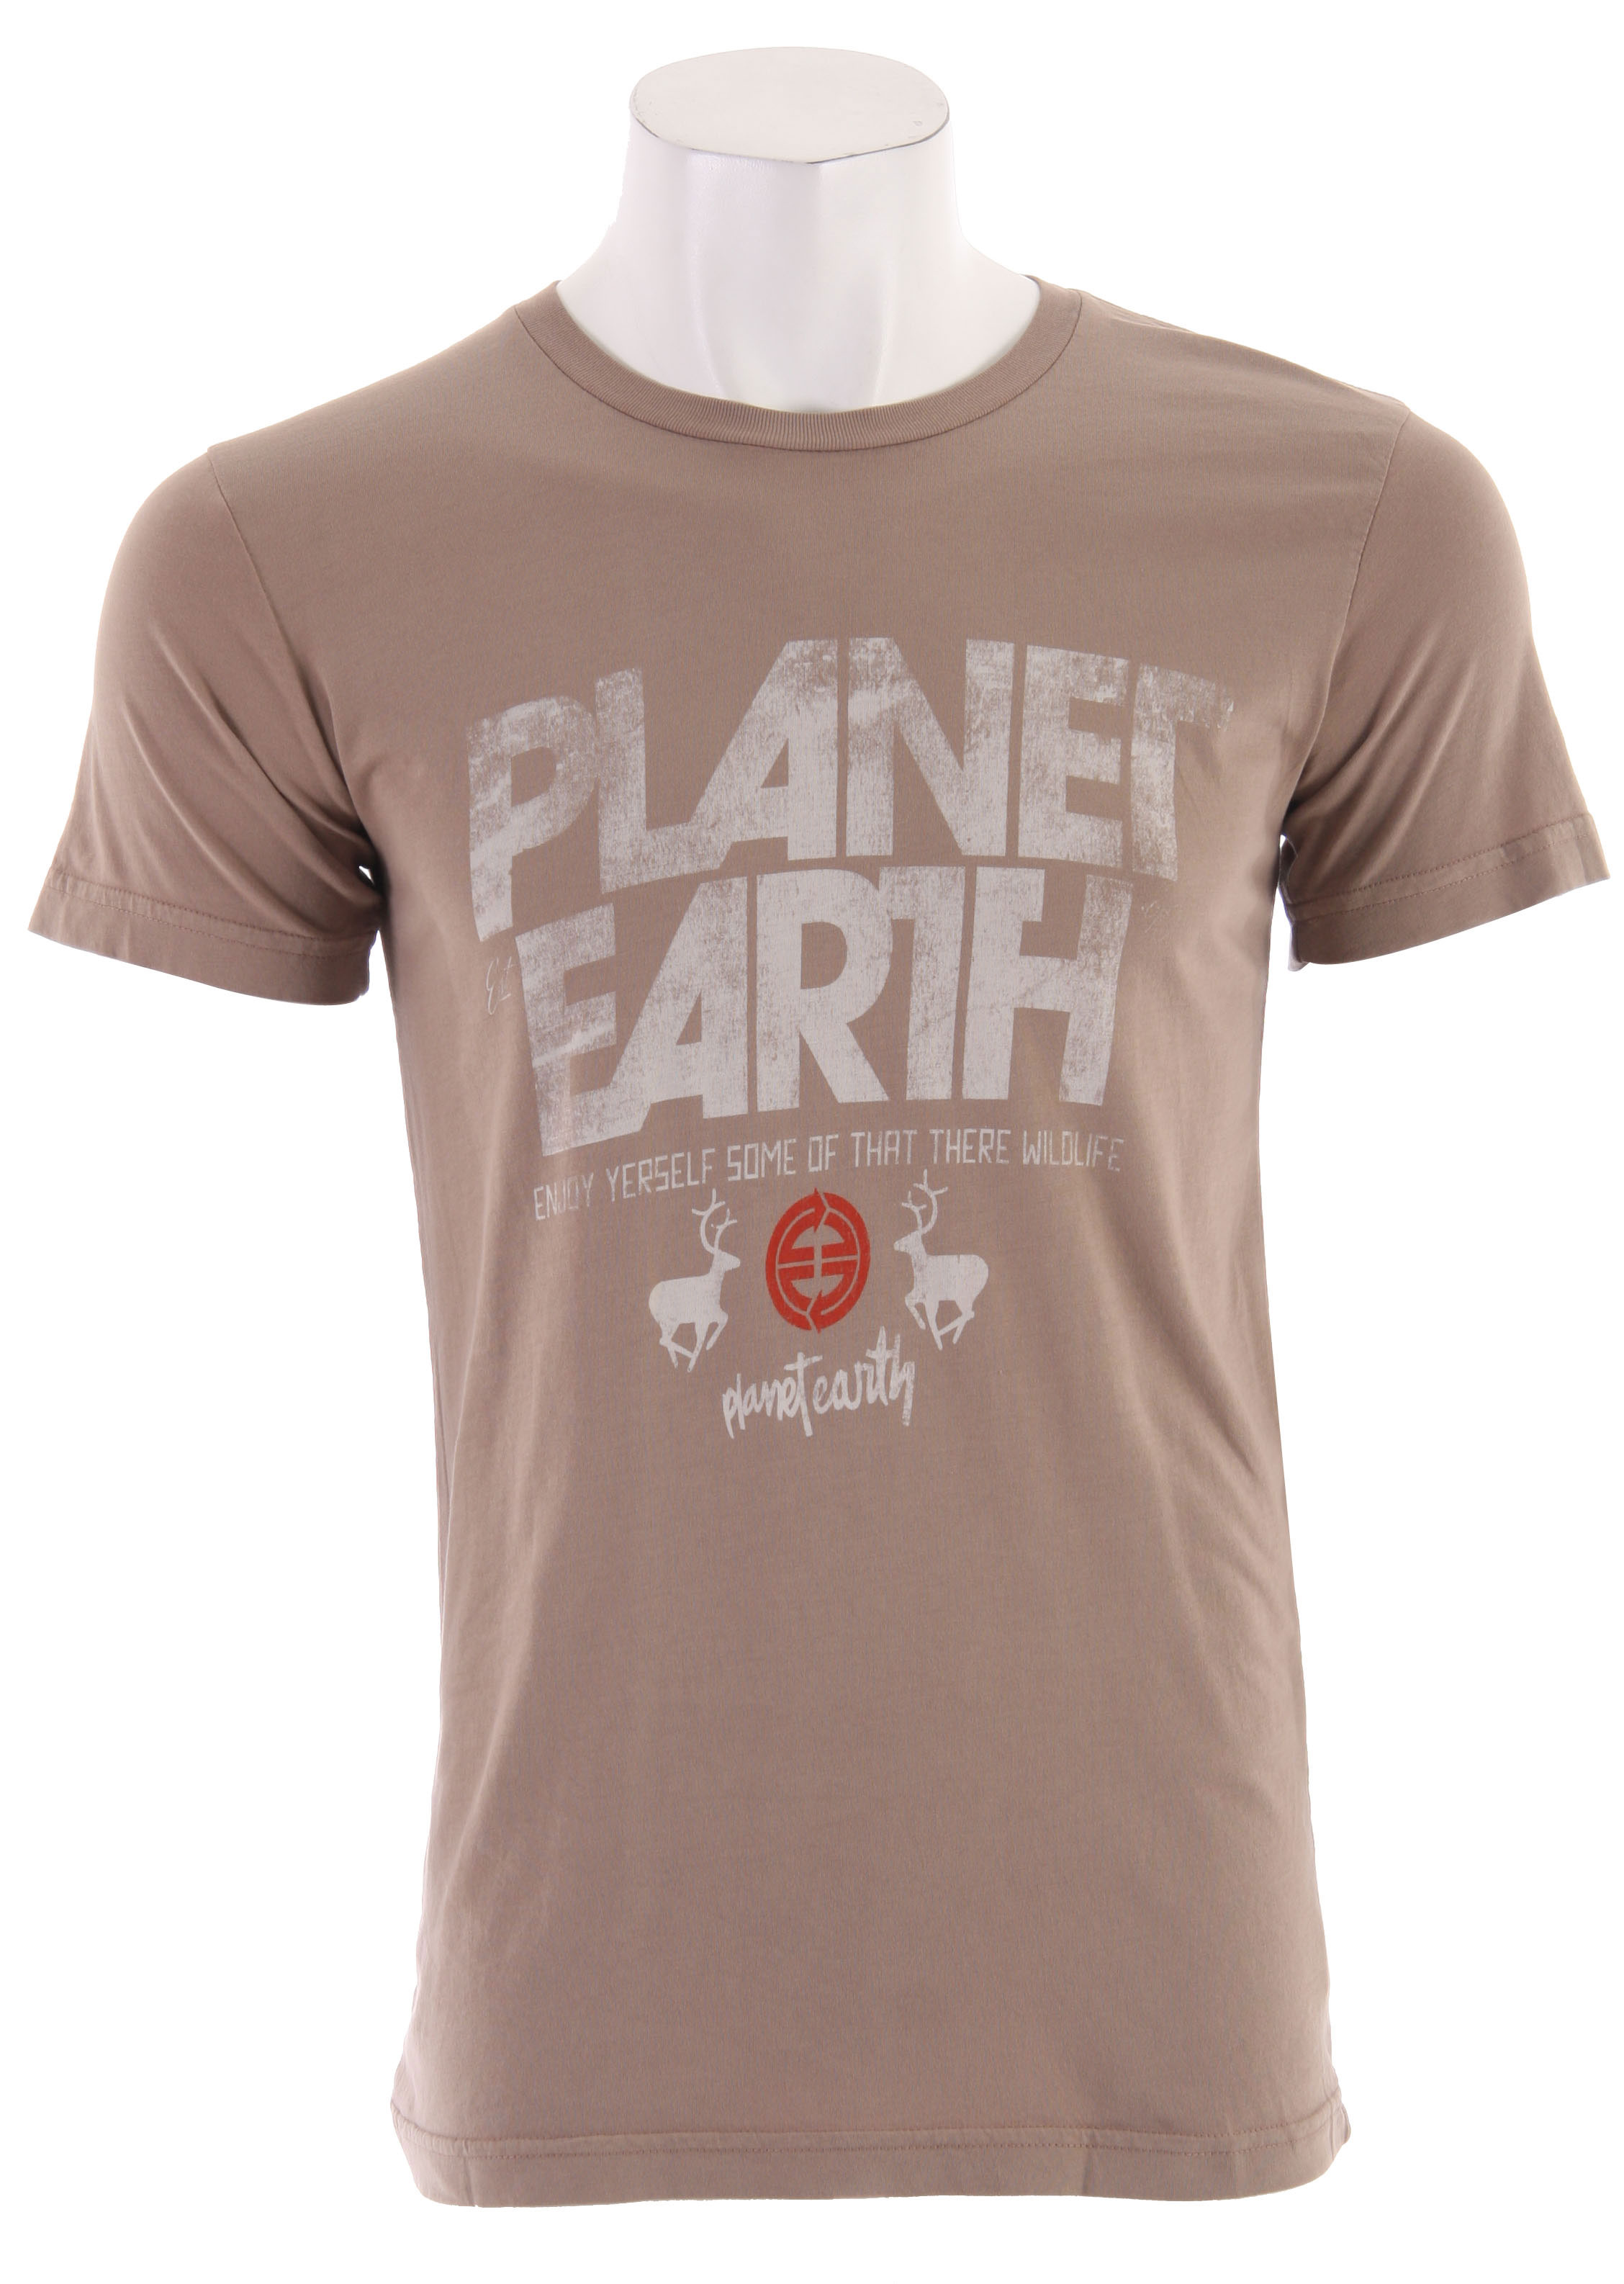 Planet Earth Newman S/S T-Shirt - $8.95